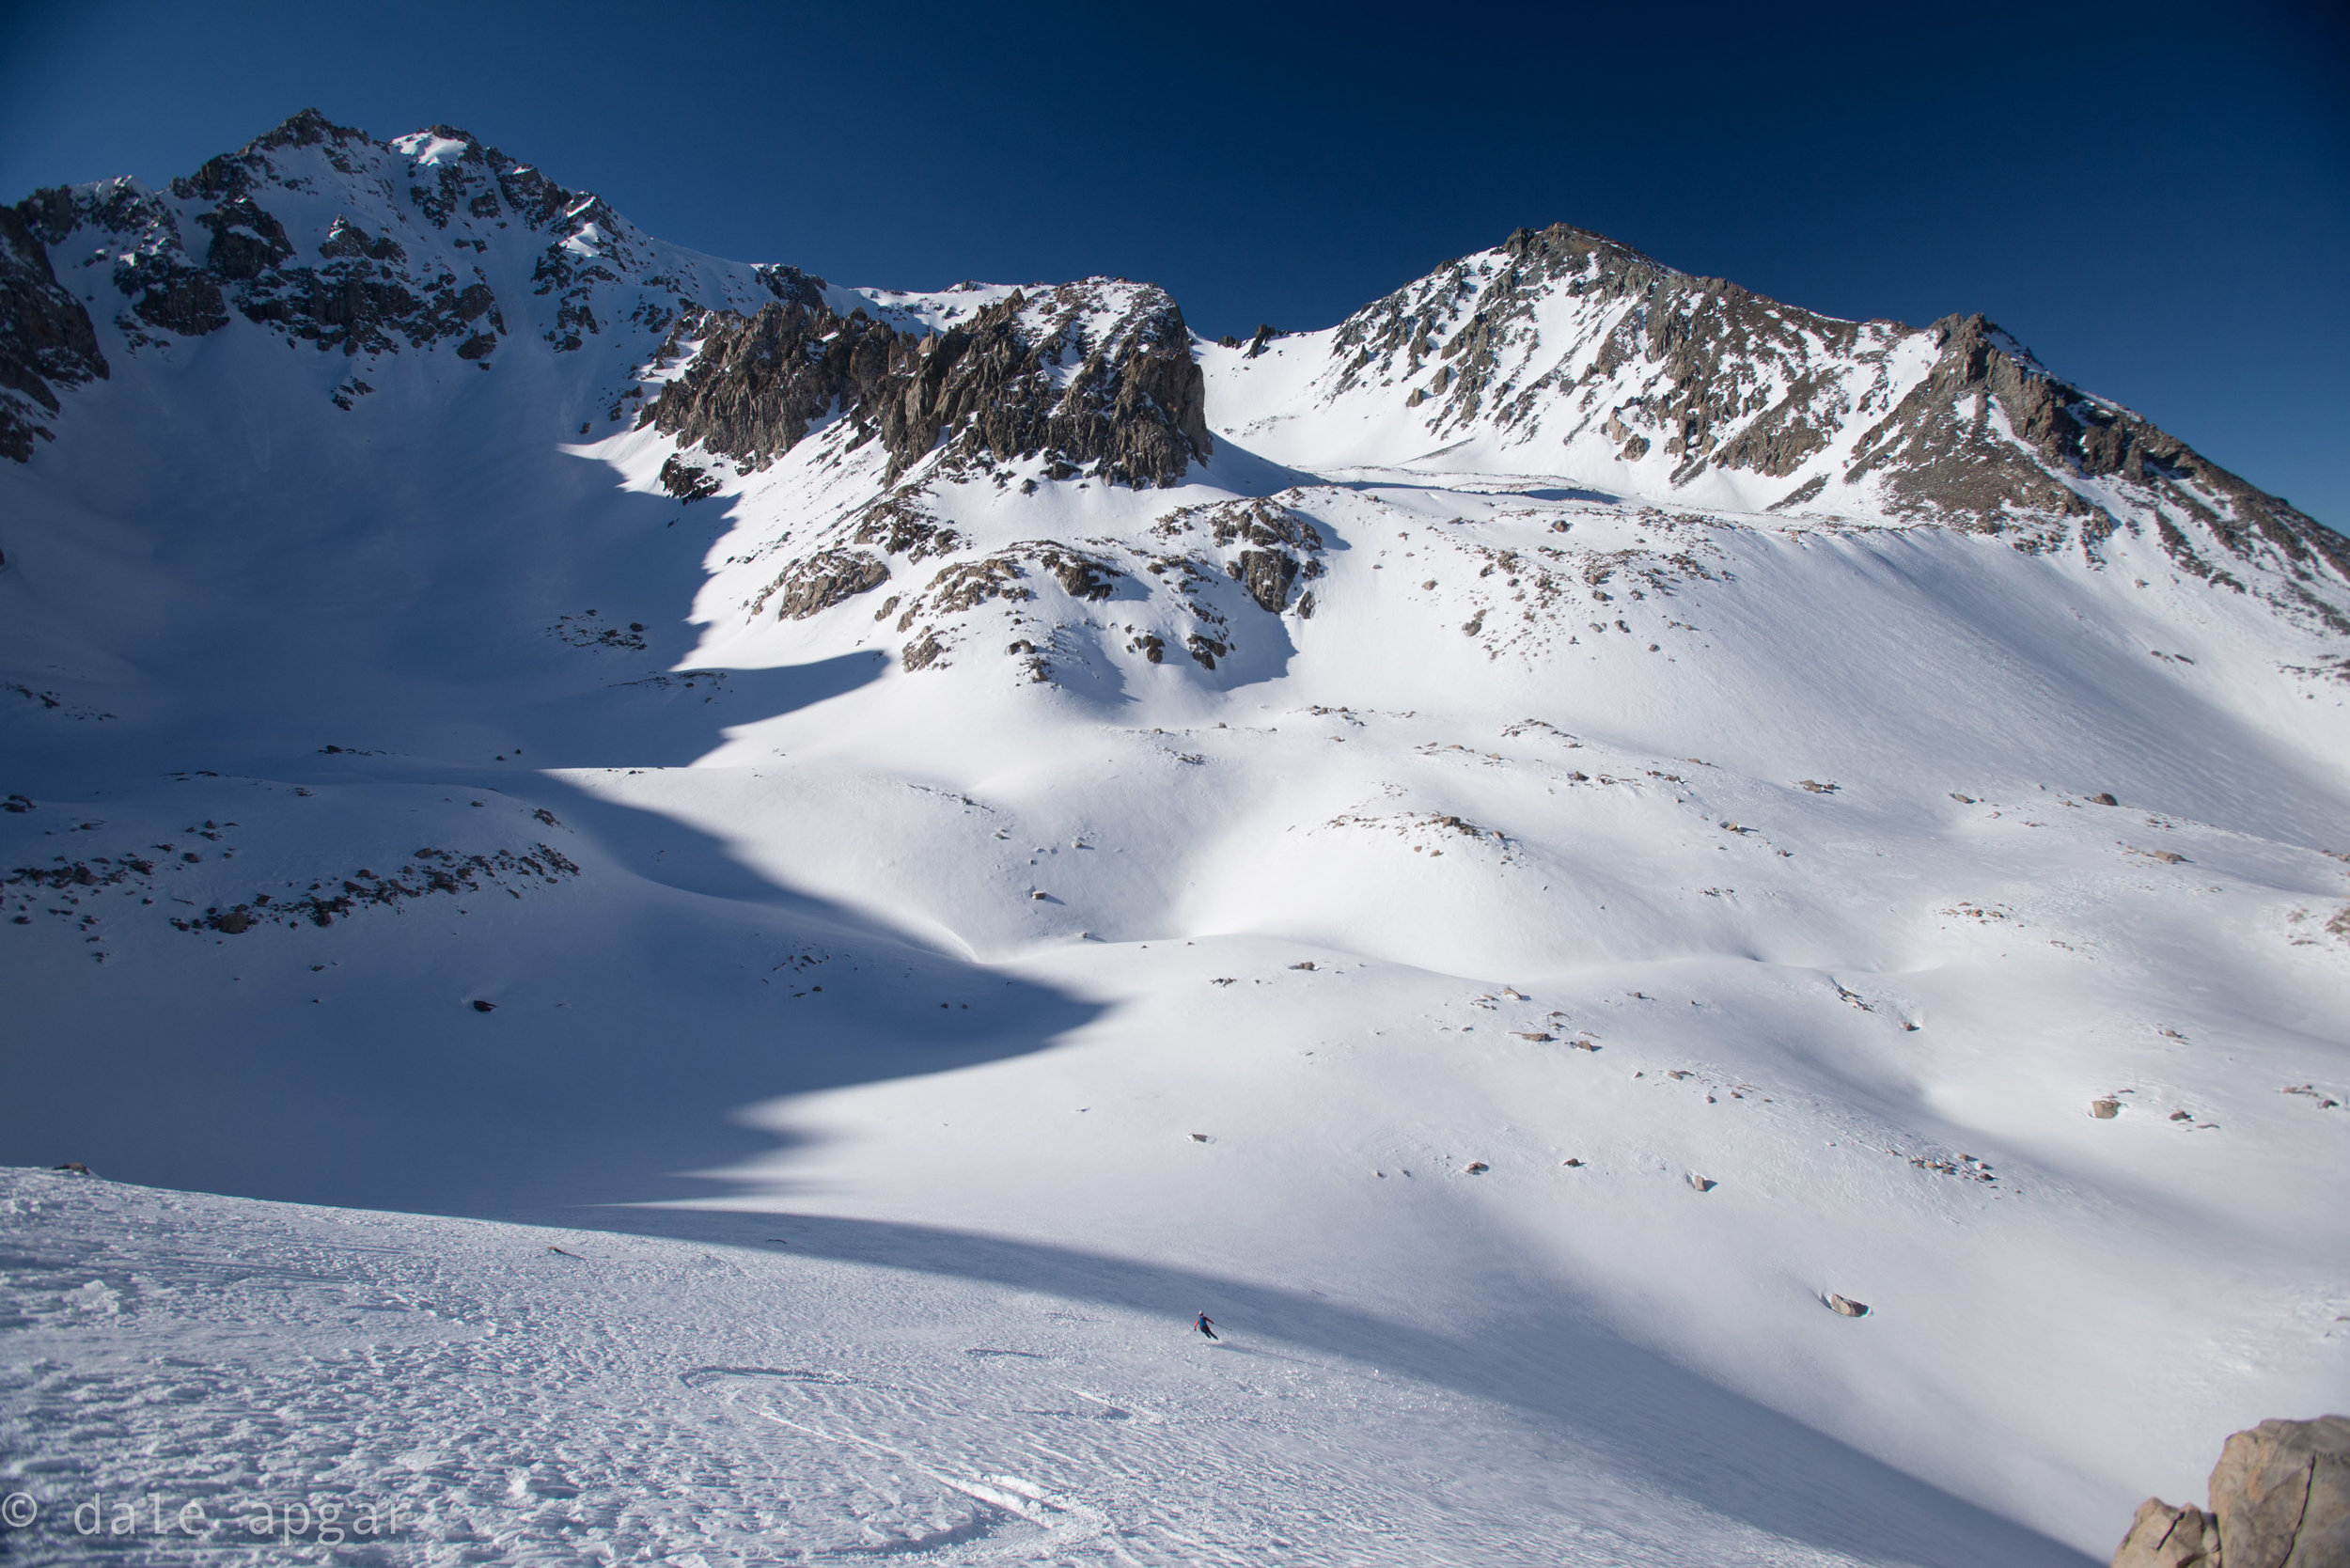 Ben putting his serpentine signature on some seldom-visited powder with Black Peak [l] and Mt. Mary Austin [r] looming behind